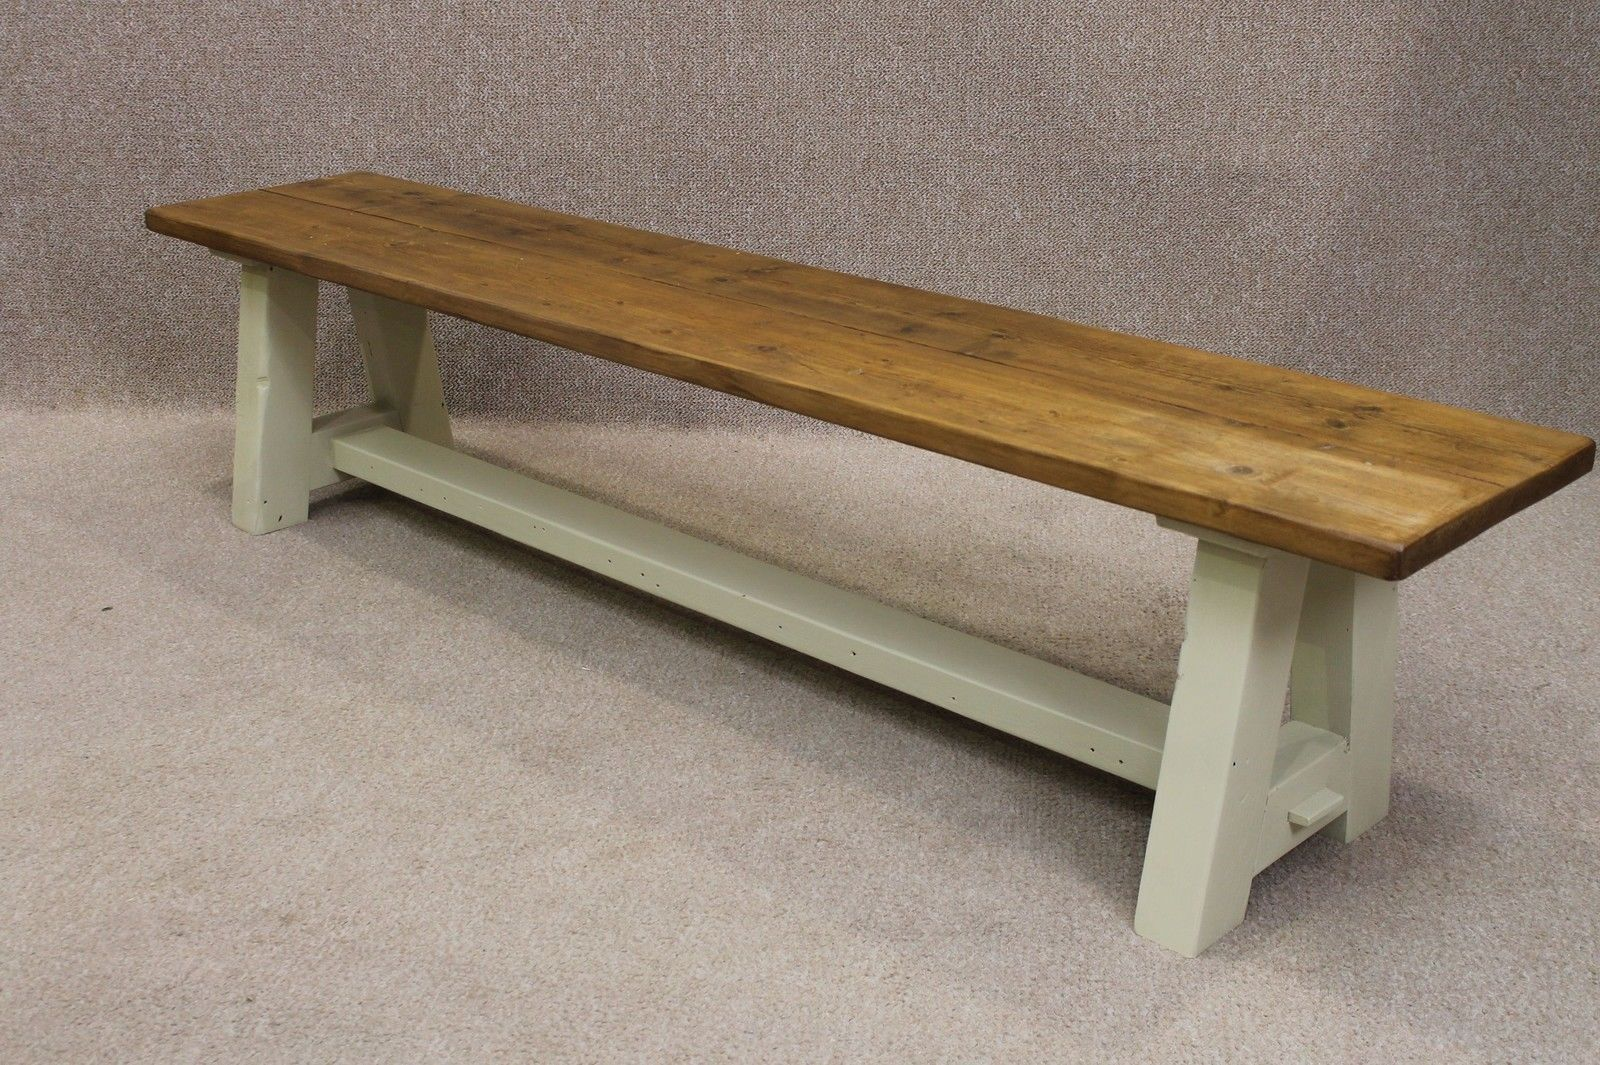 RUSTIC PINE 6FT HALL BENCH KITCHEN BENCH DINING BENCH WITH A PAINTED BASE  In Antiques,